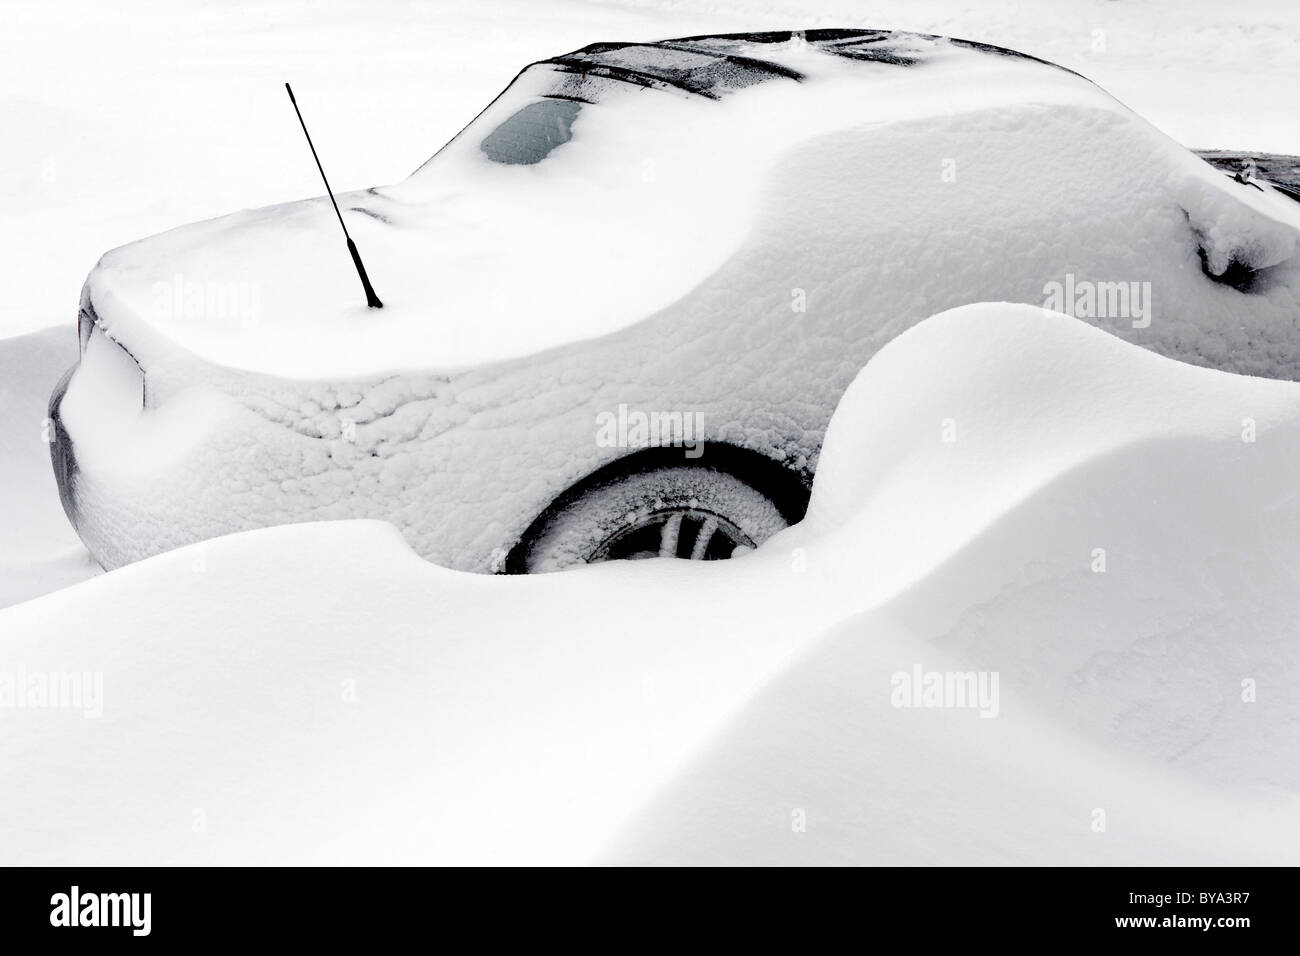 Parked car trapped in a big snowbank, North Rhine-Westphalia, Germany, Europe - Stock Image